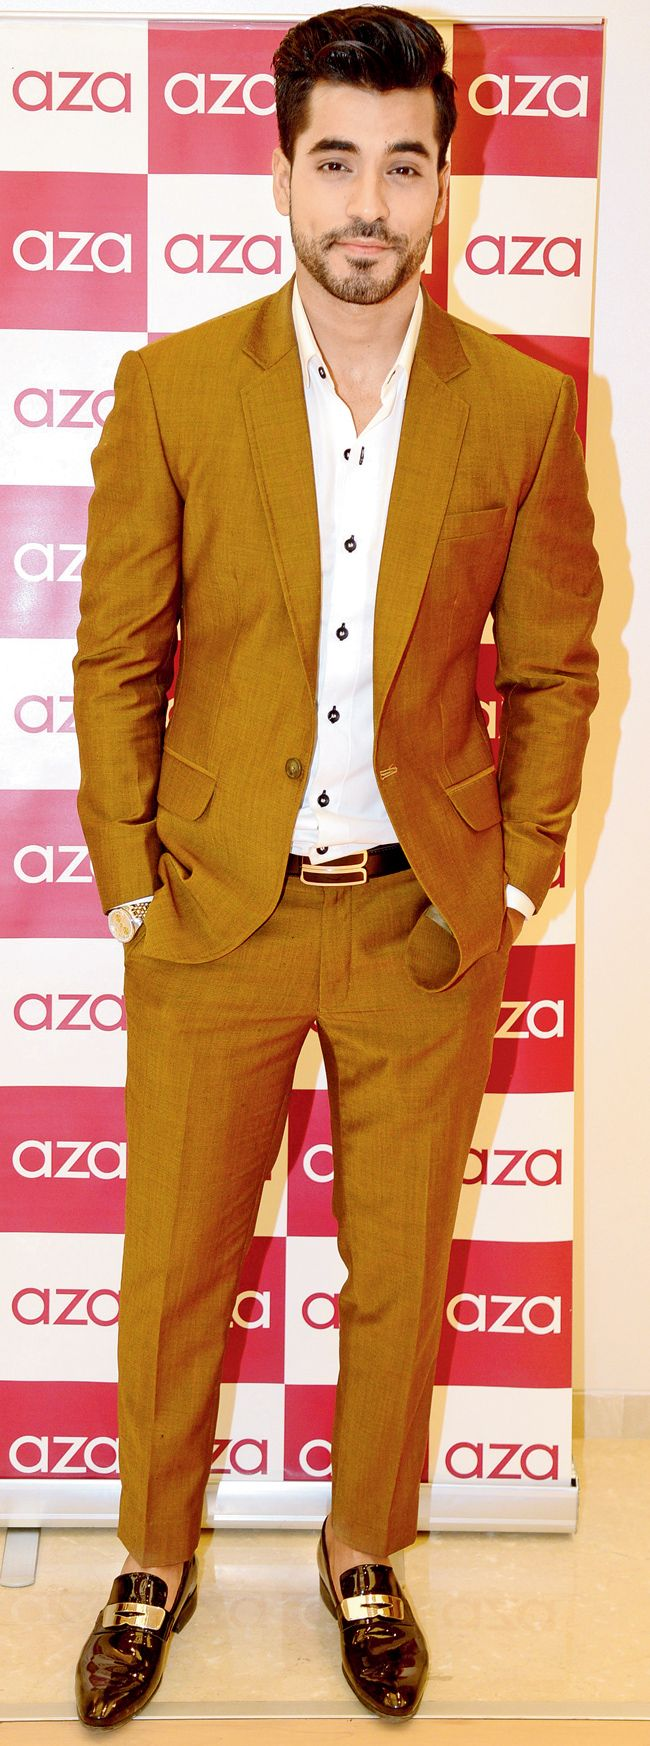 Gautam Gulati at the mens wear collection launch at Aza. #Bollywood #Fashion #Style #Handsome